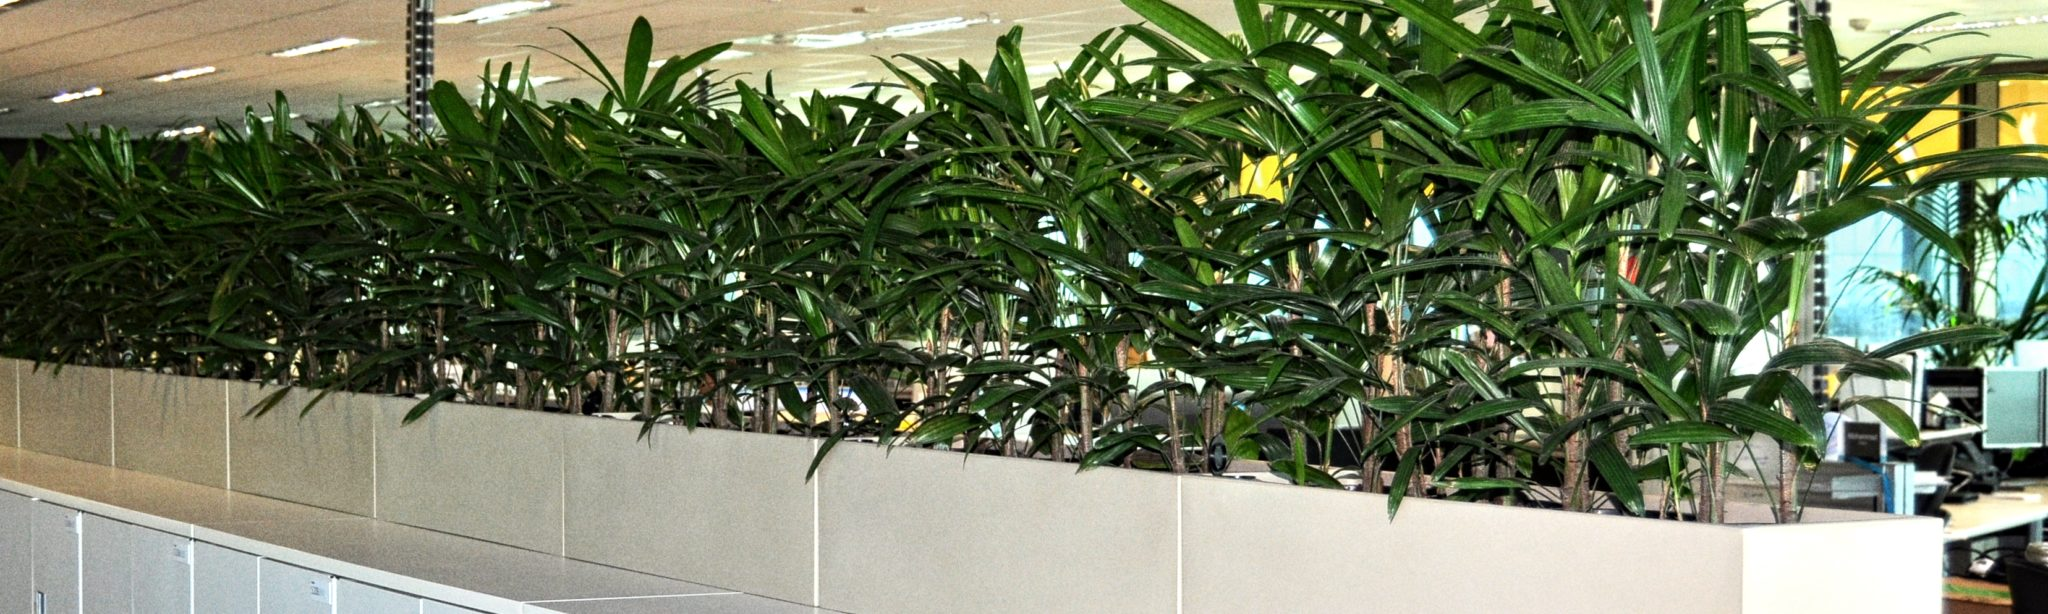 Showing seven bone coloured Urban 8 troughs with Rhapis Palms sitting on a row of cabinets.